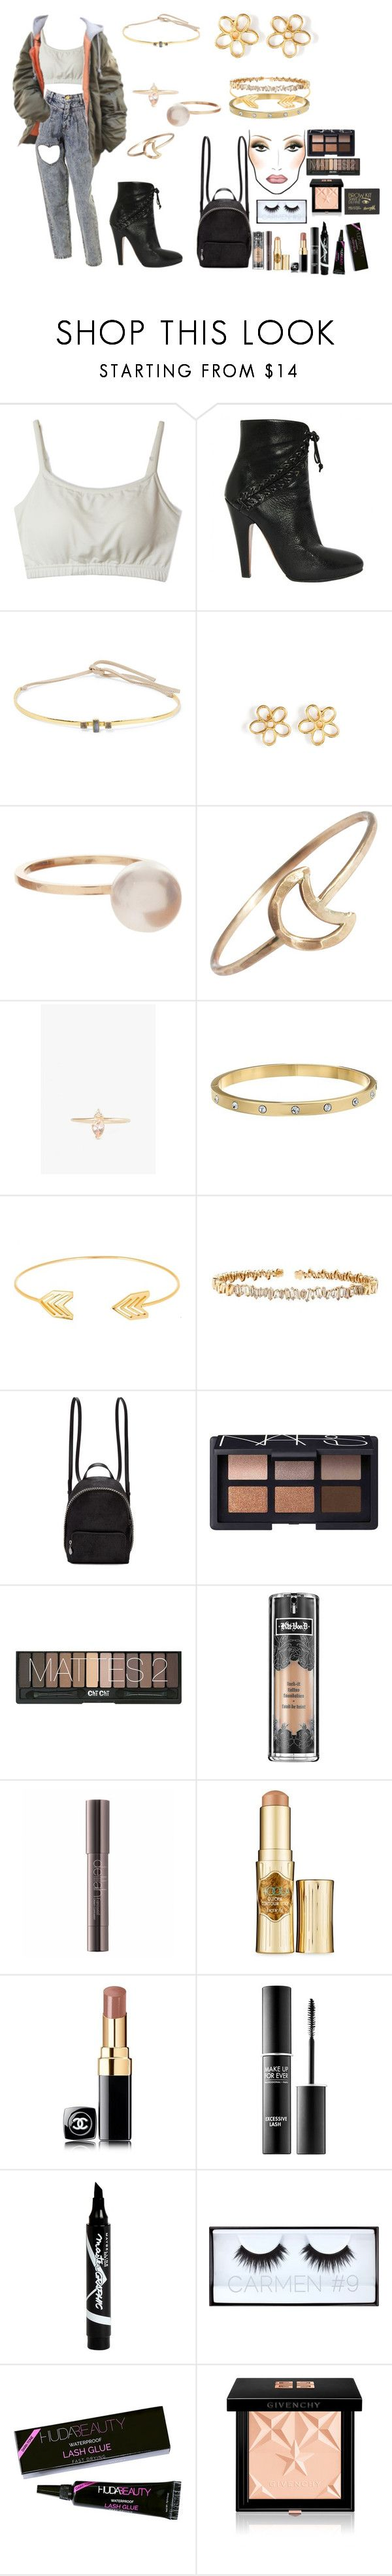 """happy birthday ariana!!"" by femalerebell ❤ liked on Polyvore featuring Alaïa, Cornelia Webb, Marc by Marc Jacobs, Sophie Bille Brahe, Stefanie Sheehan Jewelry, LUMO, Kate Spade, Lord & Taylor, Suzanne Kalan and STELLA McCARTNEY"